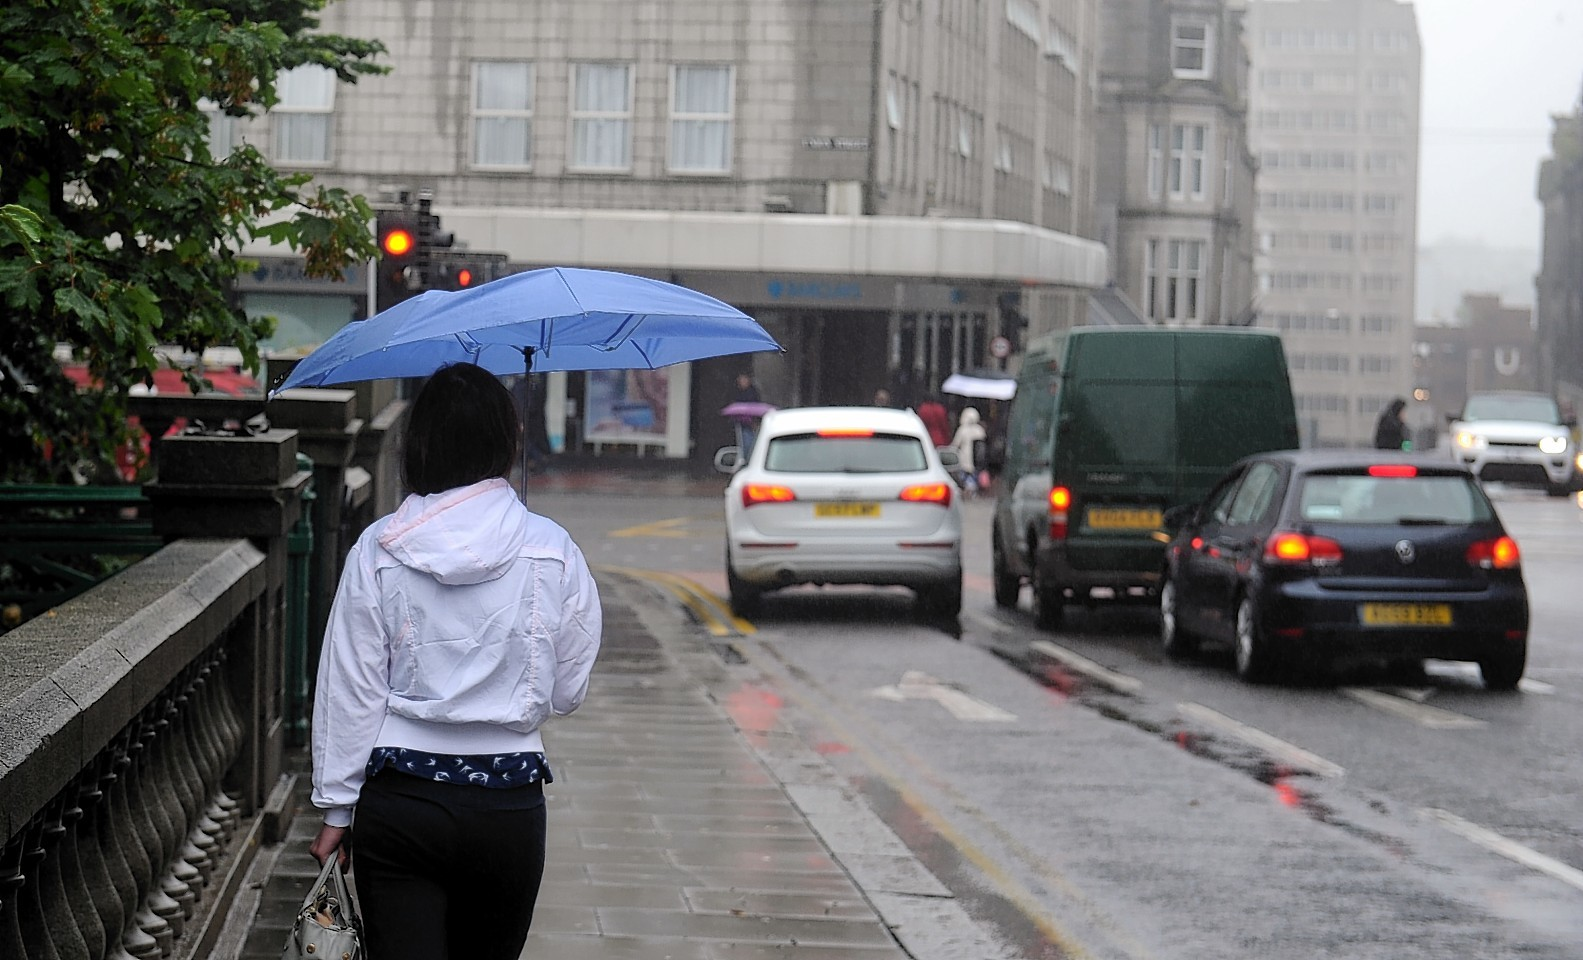 Get your brollies at the ready, Met Office experts believe we are in for heavy rainfall